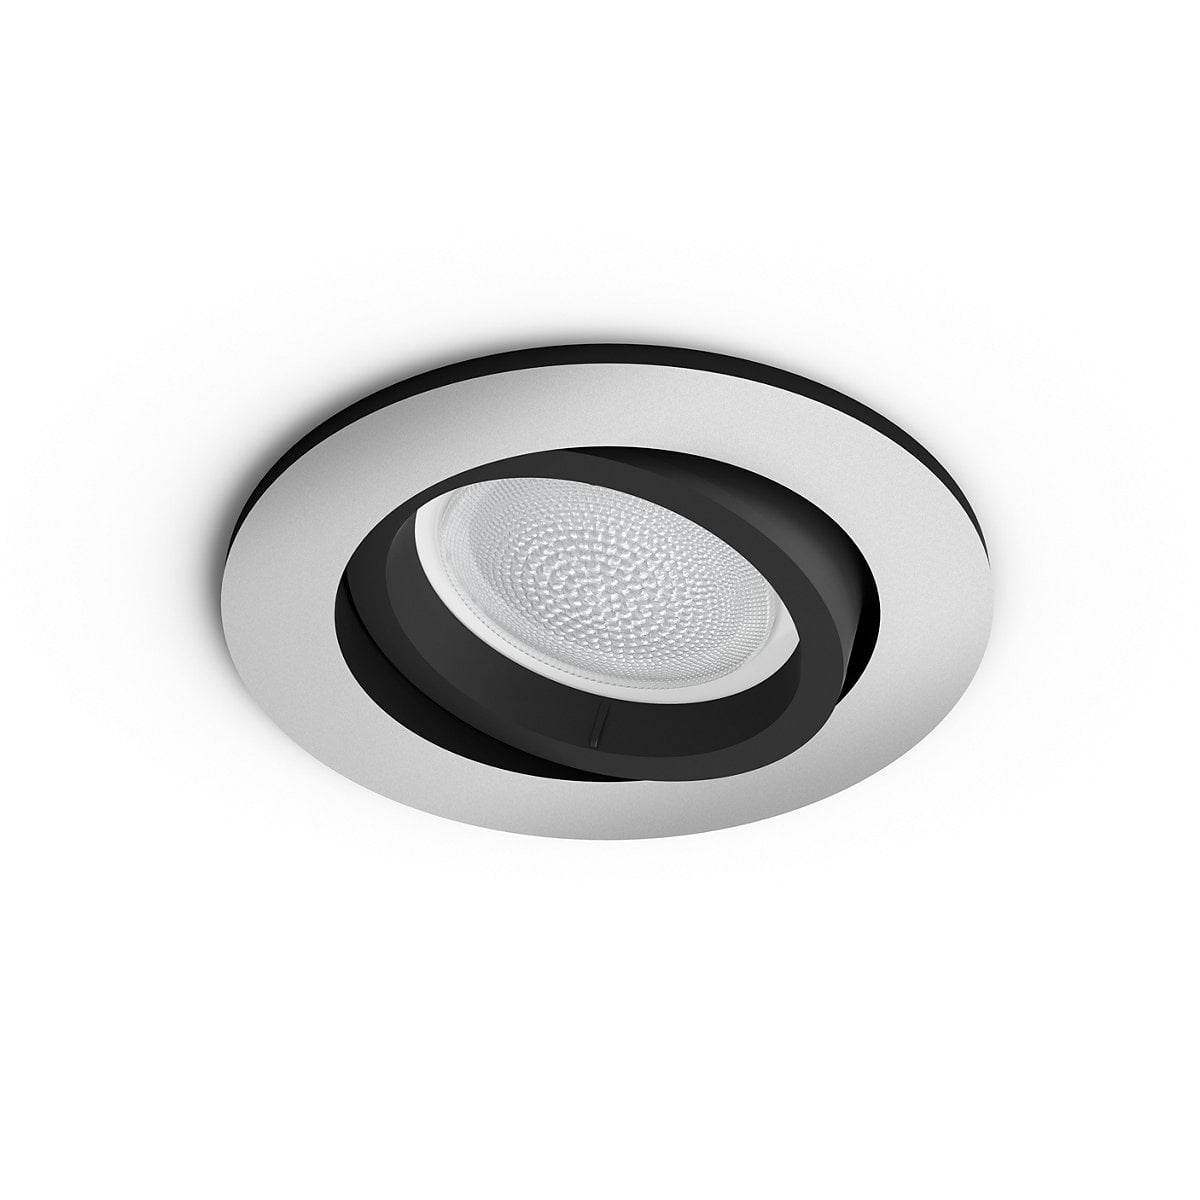 Philips Hue White and Colour Ambiance Centura recessed spot (circular) – Homekit News and Reviews